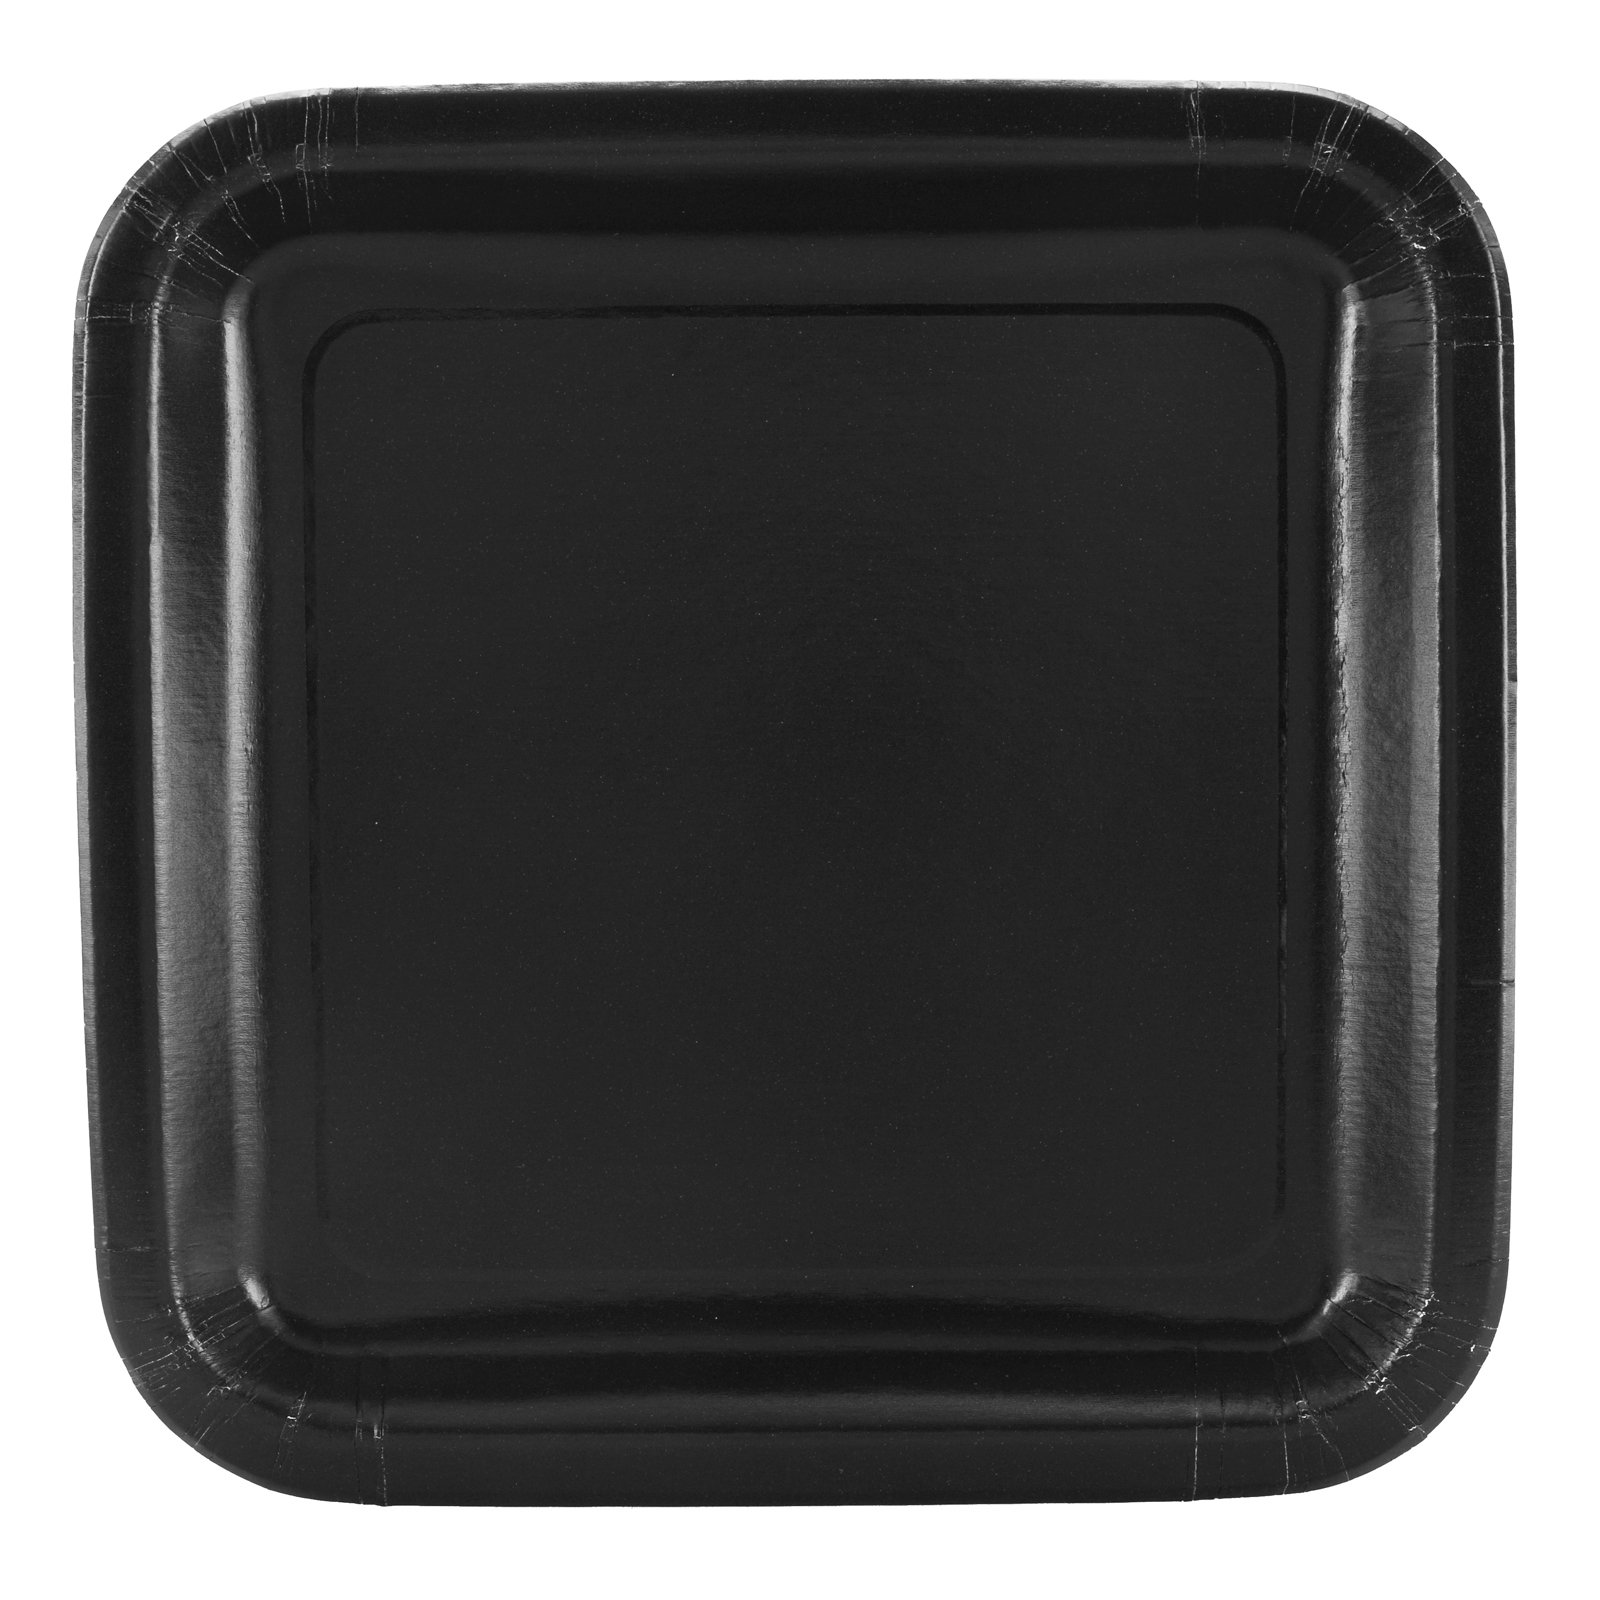 Black Square Dinner Plates (12 count)